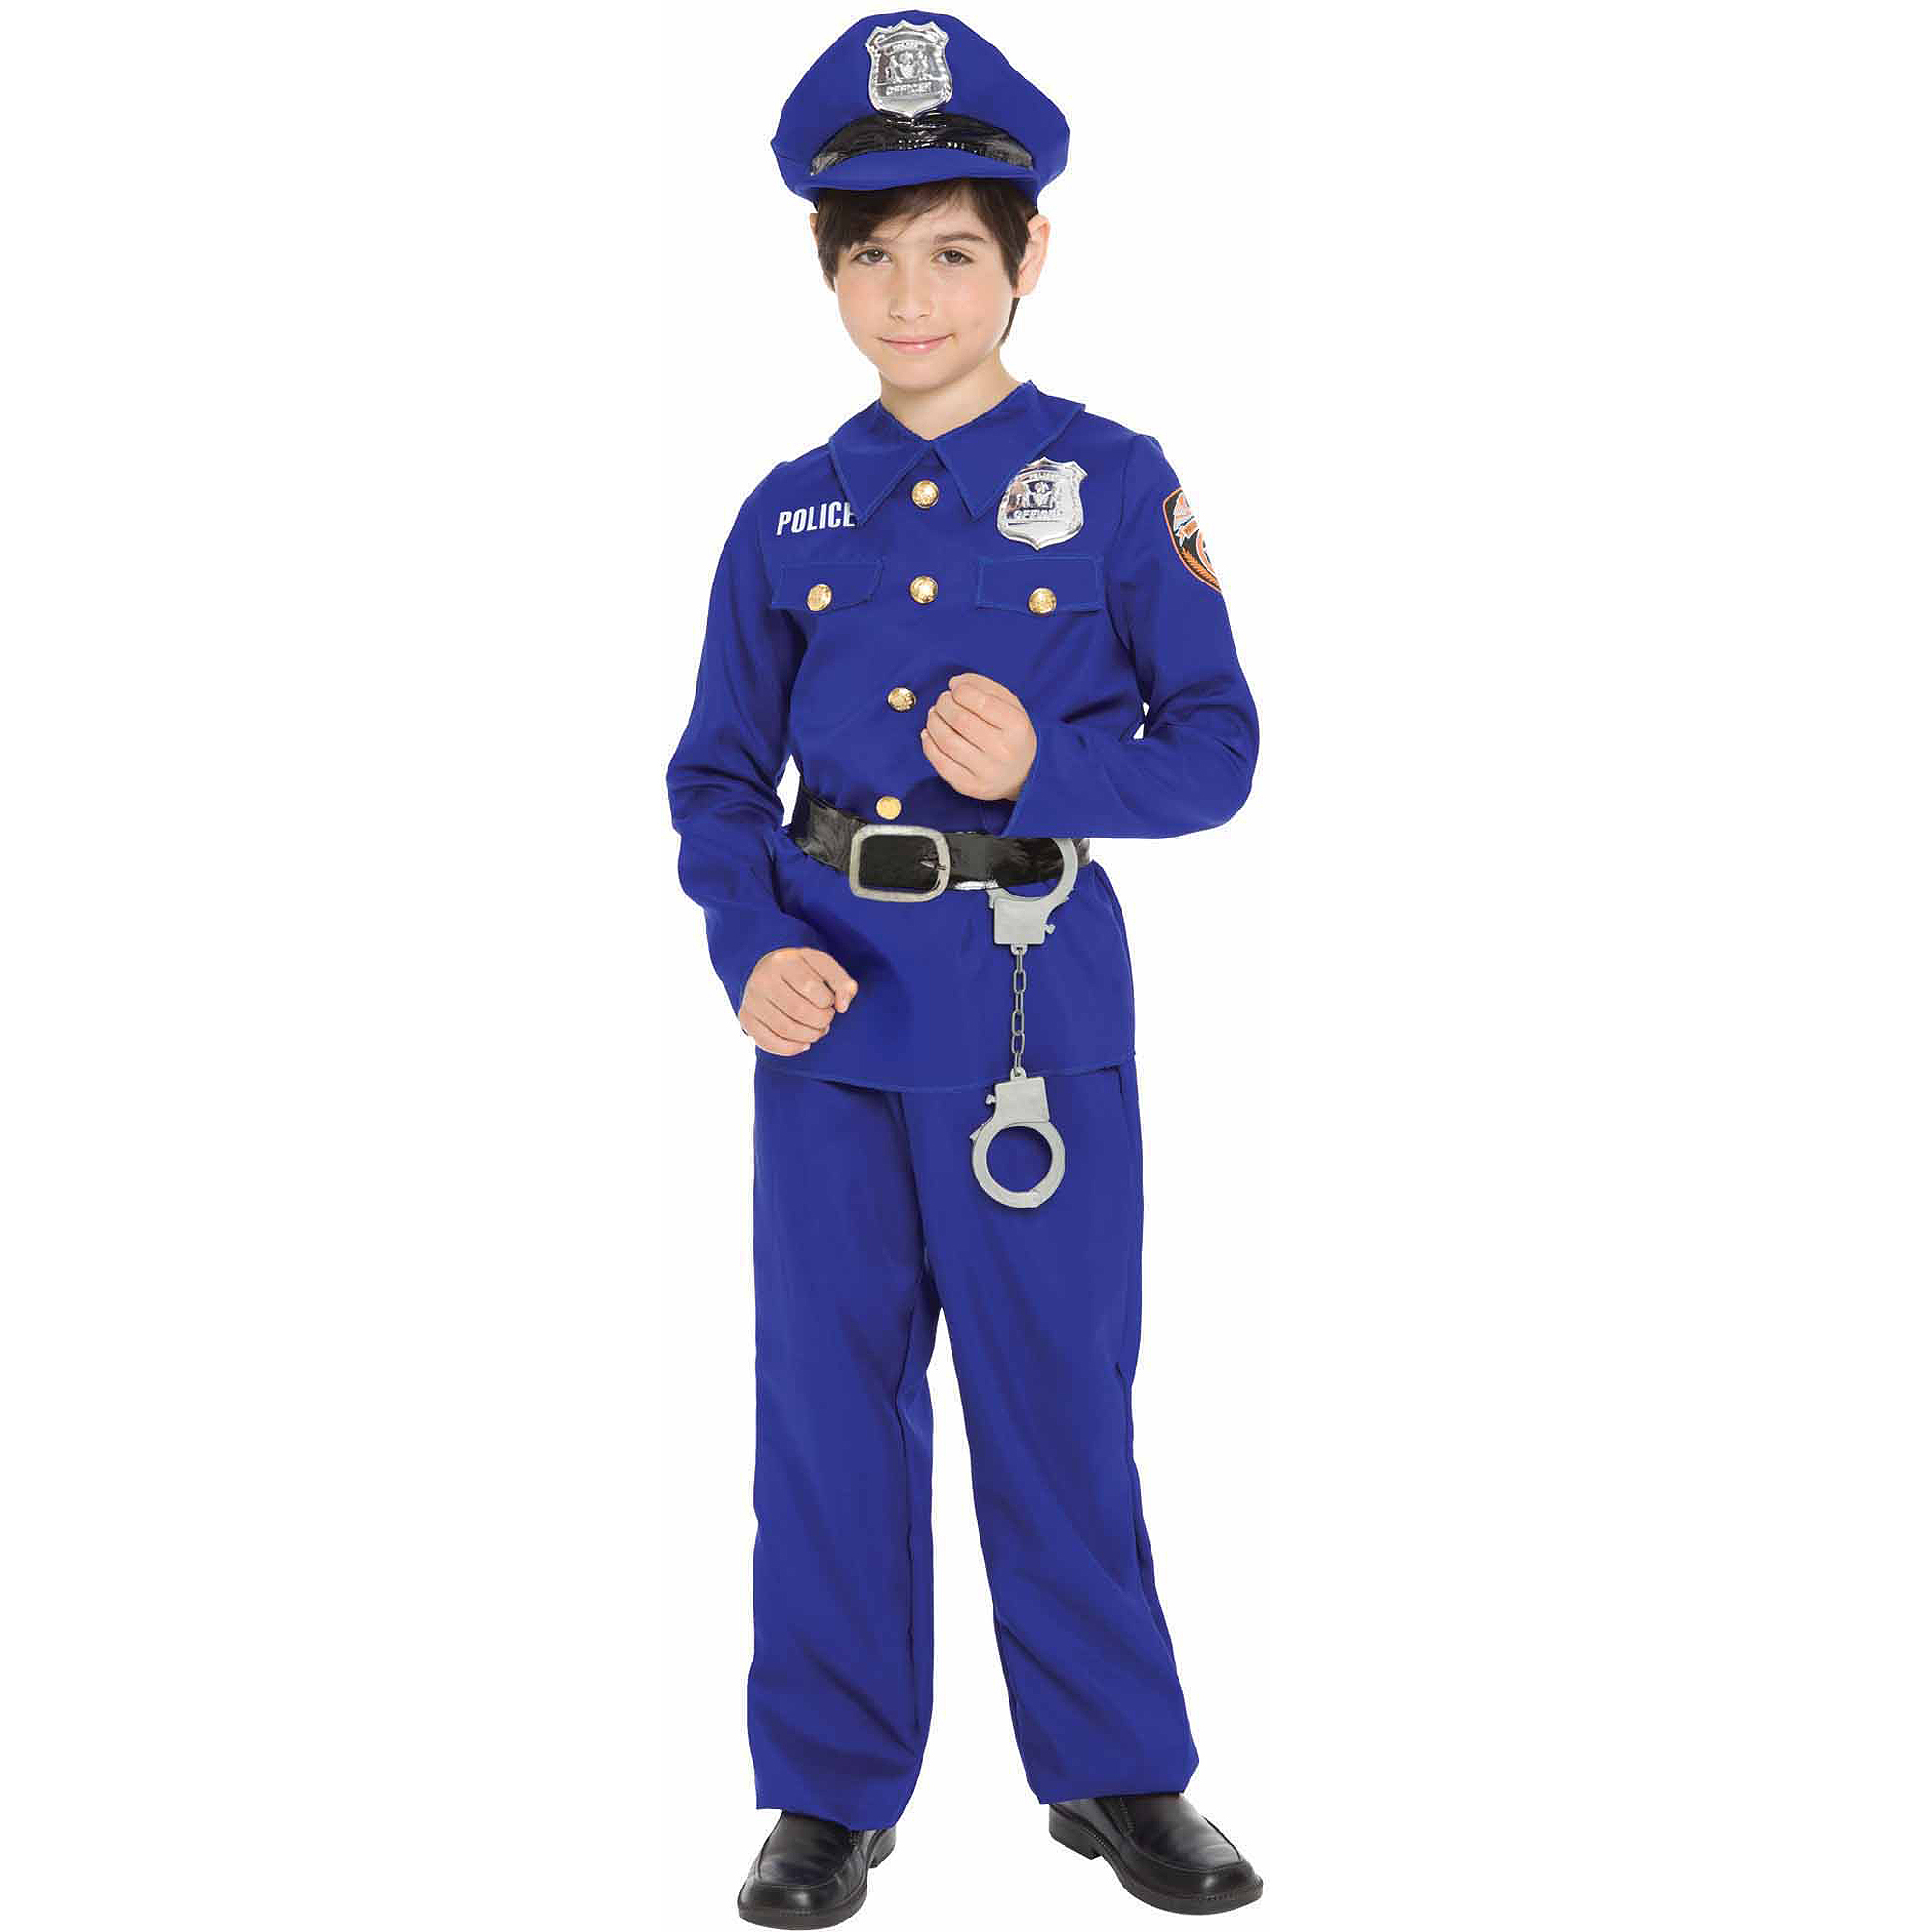 Police Officer Child Halloween Costume  sc 1 st  Walmart & Police Costumes